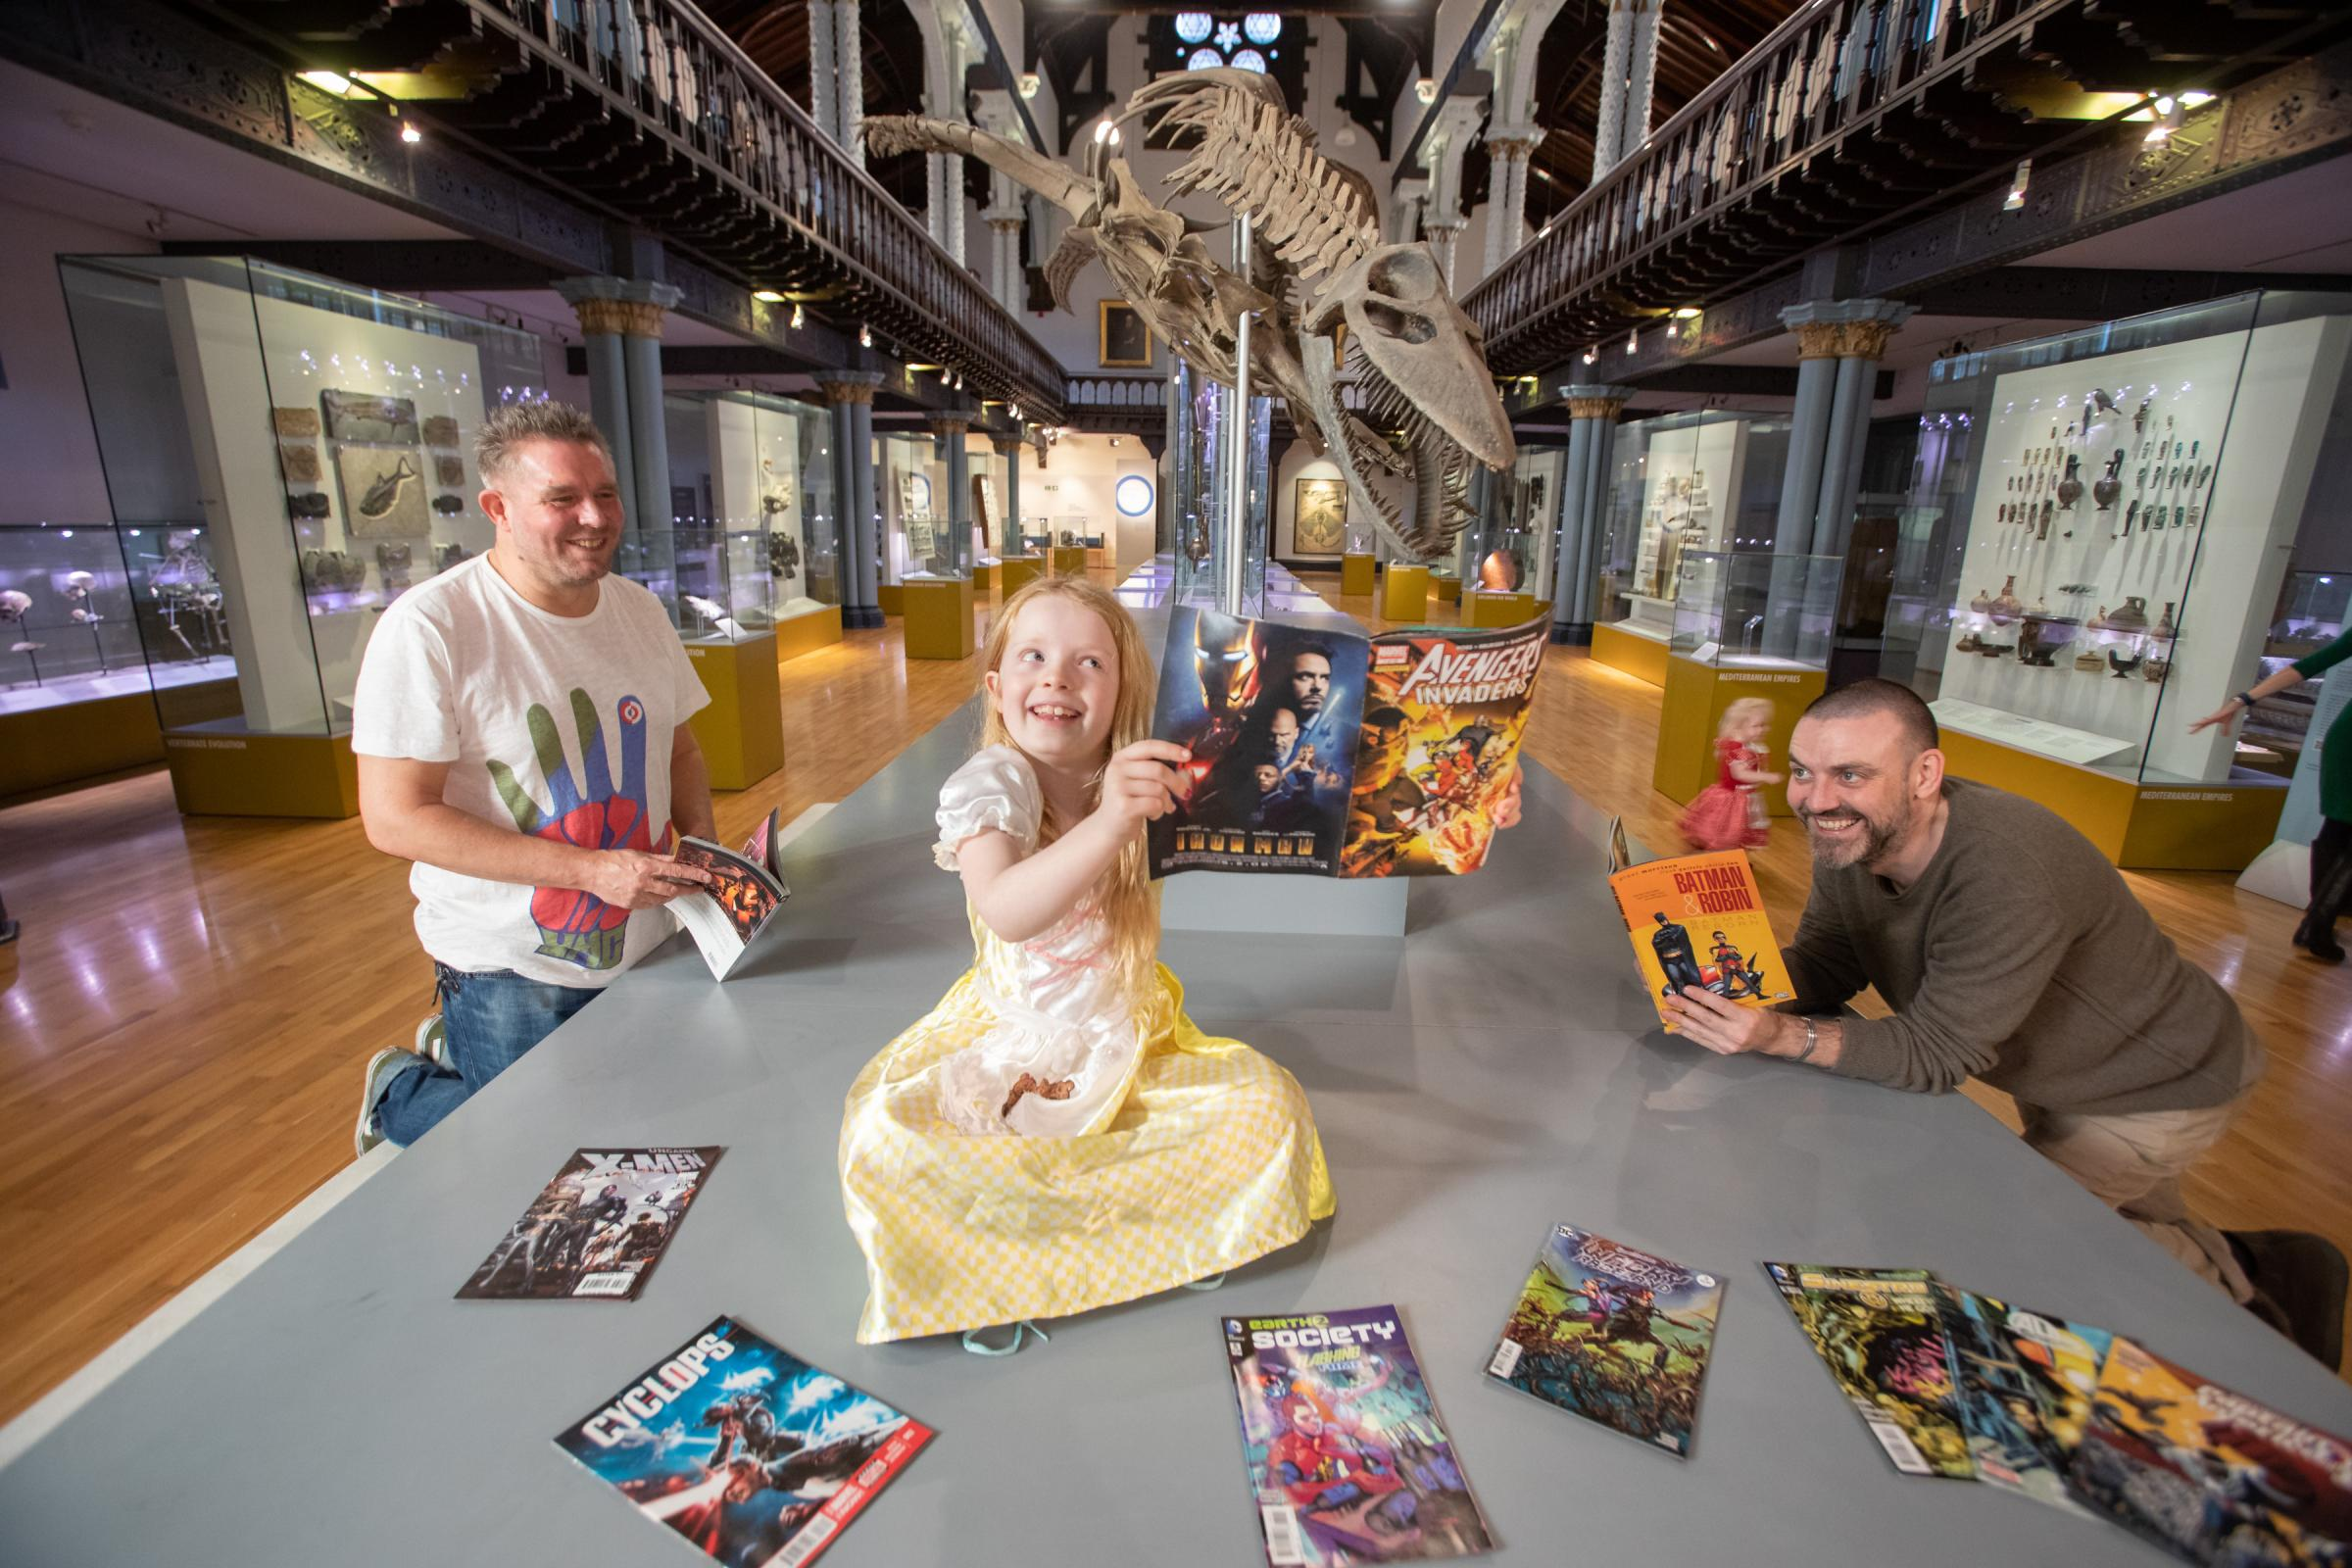 Night at the museum brings comic books to life